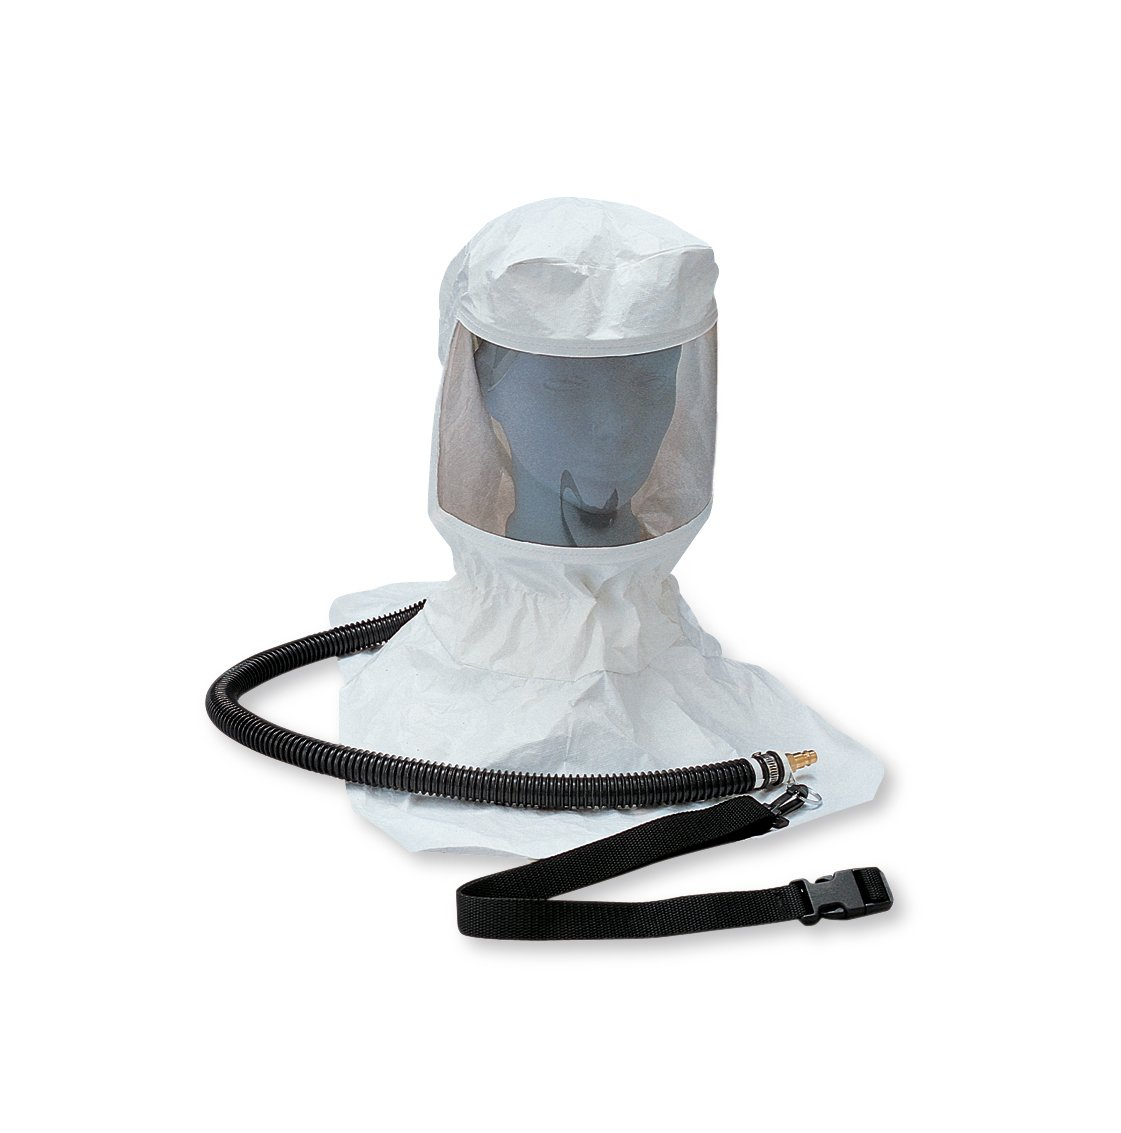 Allegro Industries 9910 Tyvek Hood CF SAR Assembly, Includes OBAC Fitting, Belt, Clip and Suspension, Standard by Allegro Industries (Image #1)